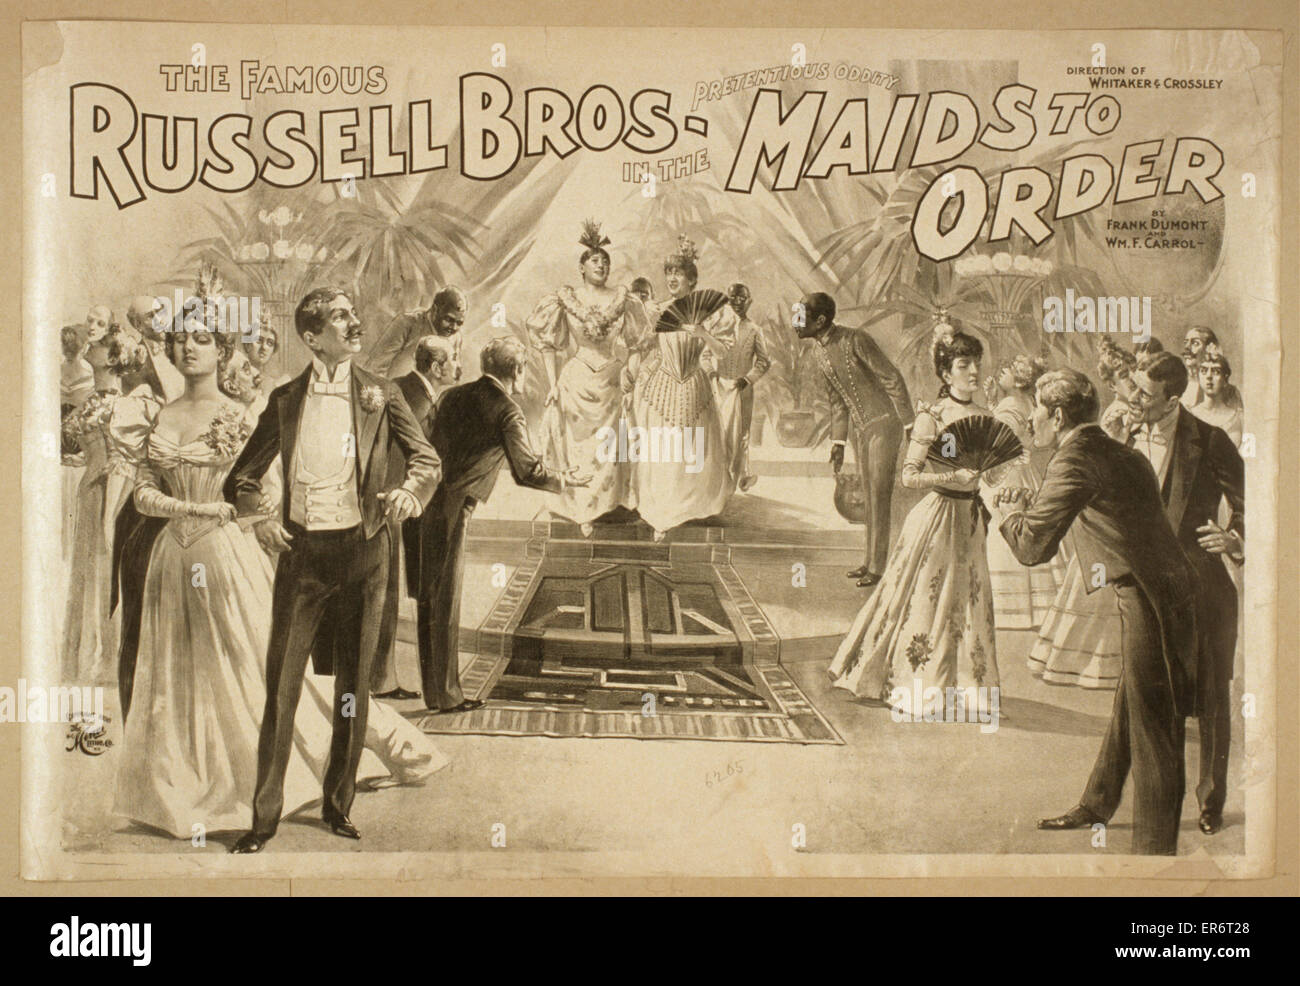 The famous Russell Bros. in the pretentious oddity, Maids to order by Frank Dumont and Wm. F. Carrol. Date c1898. - Stock Image